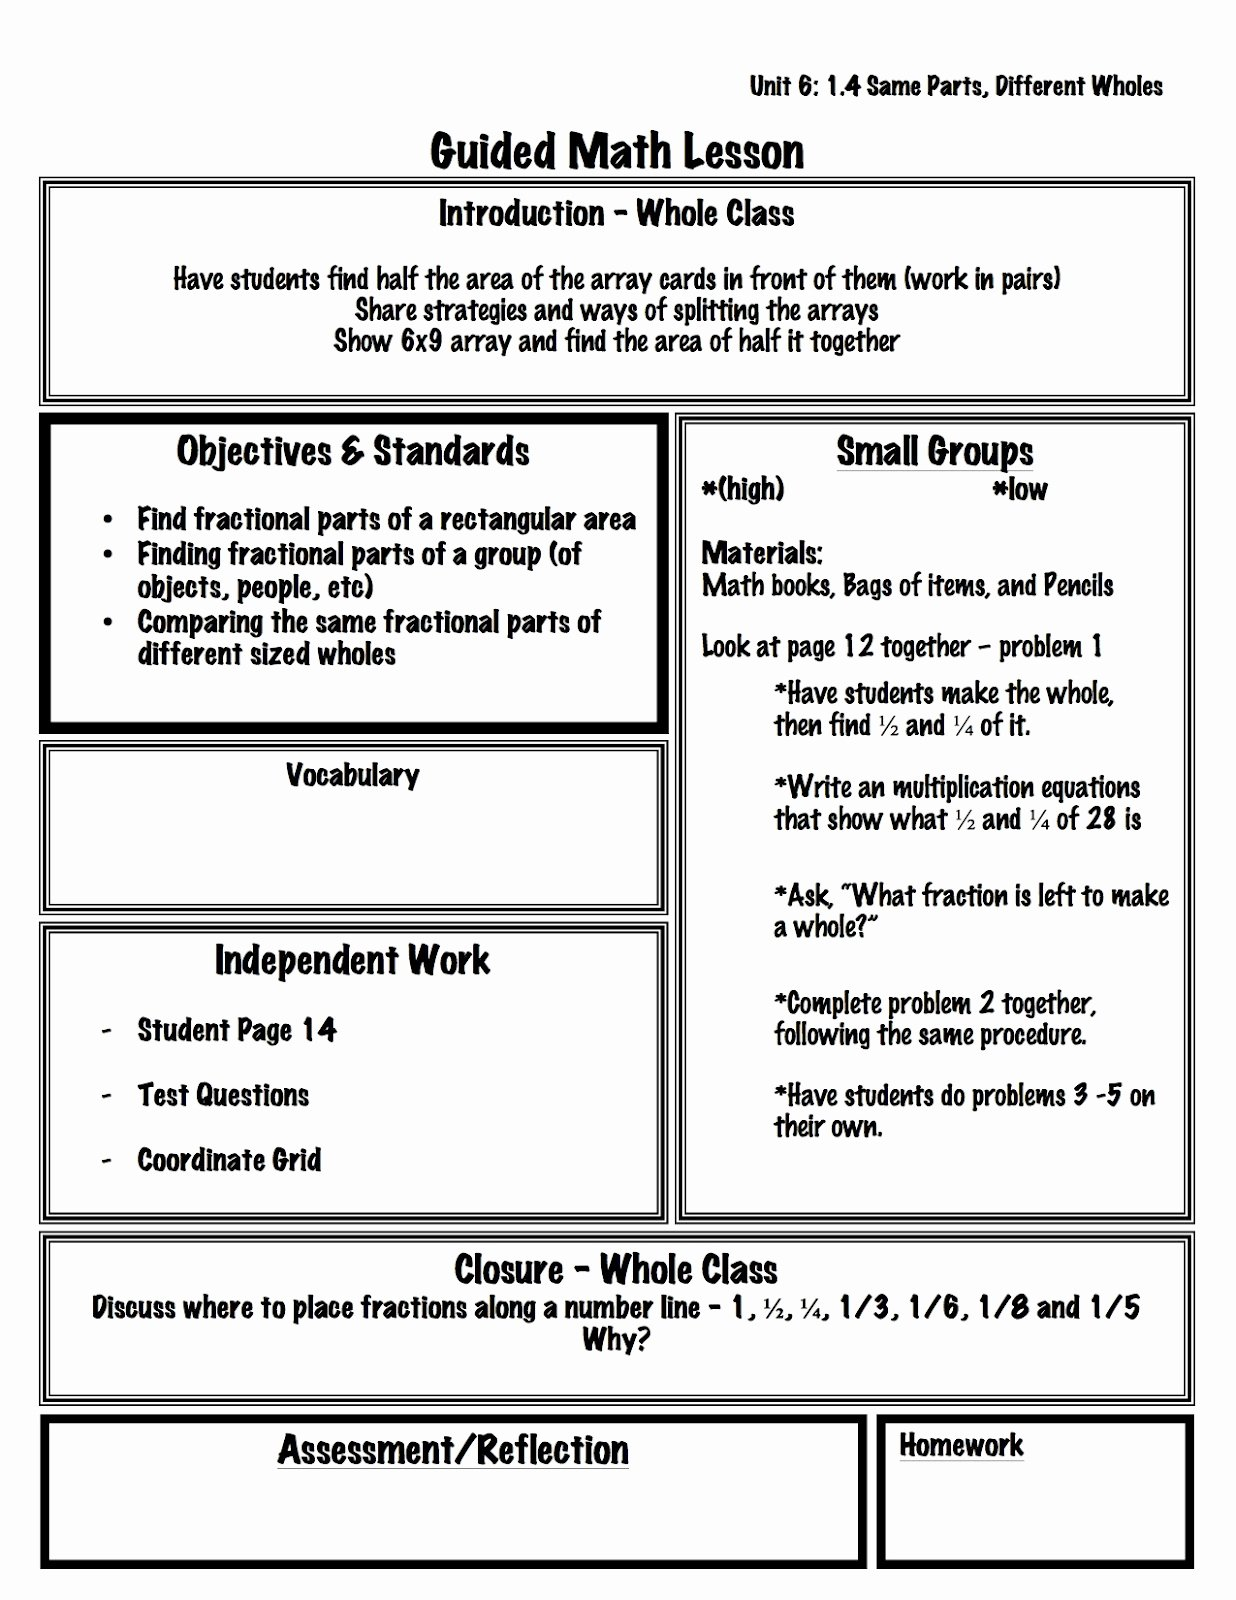 Small Group Lesson Plan Template Awesome 2 organized Apples Classroom solutions for Grades 3 5